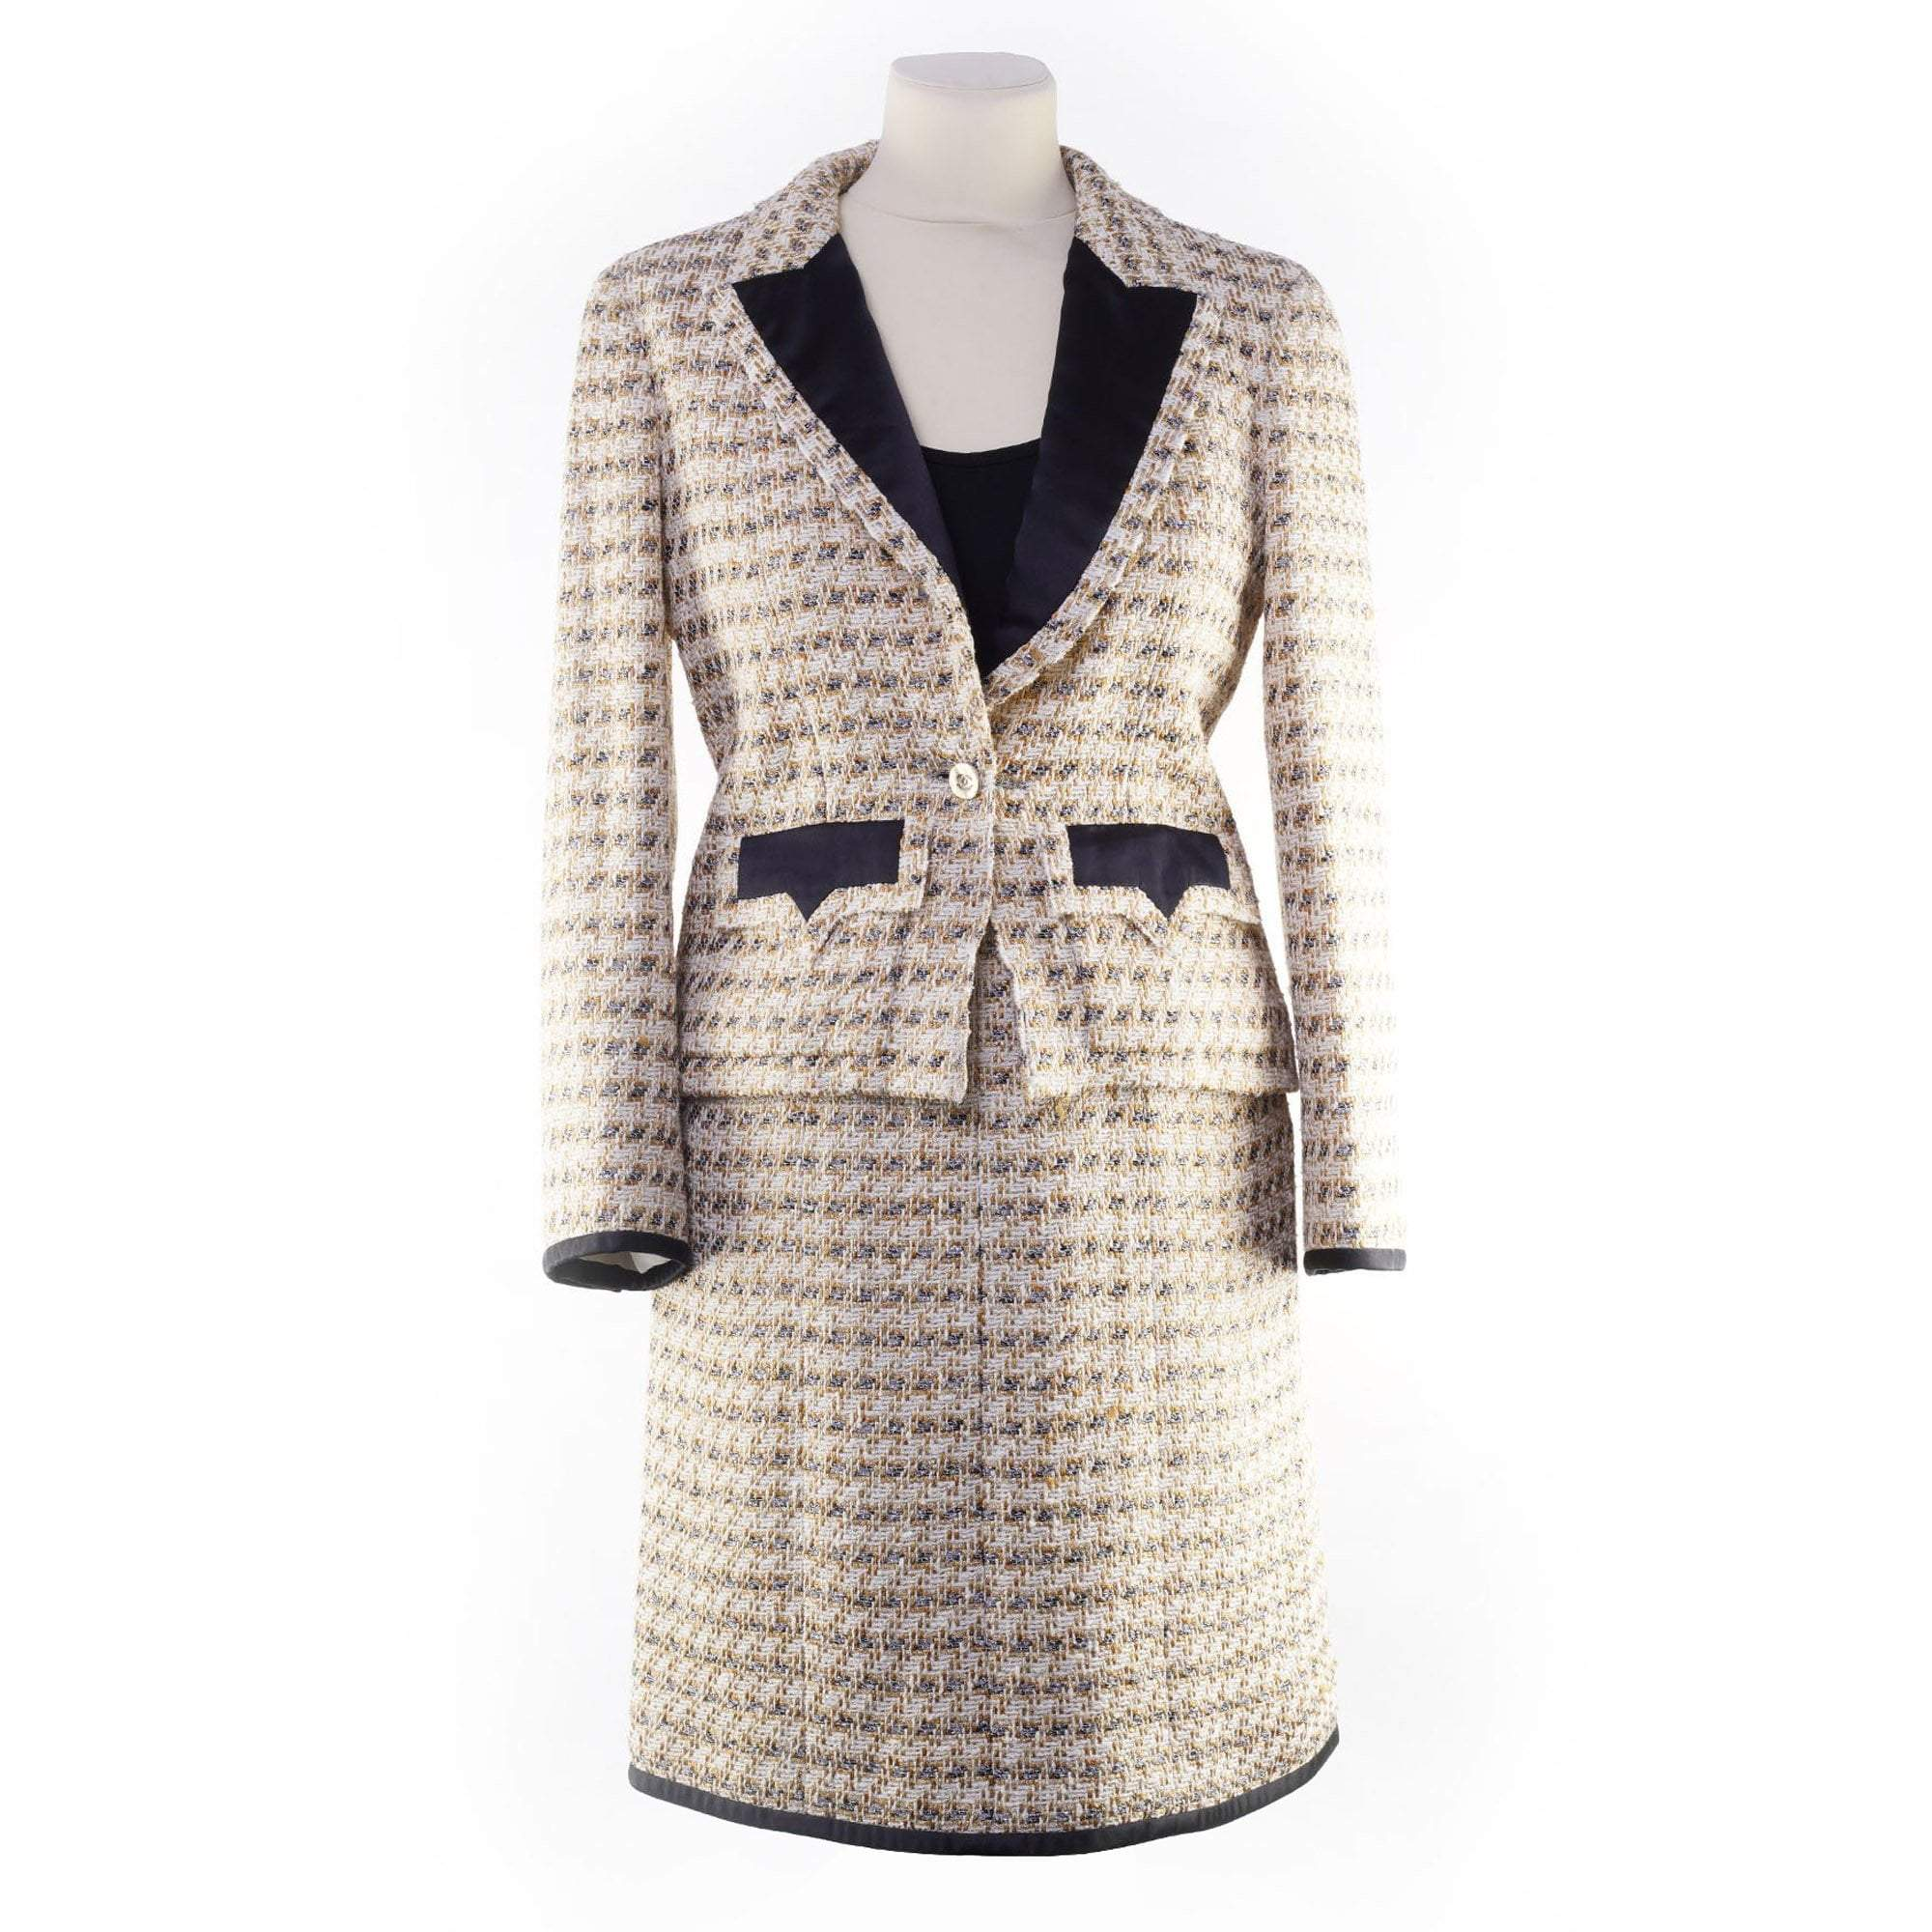 Chanel Beige and Gold Tweed Jacket (Jacket only)